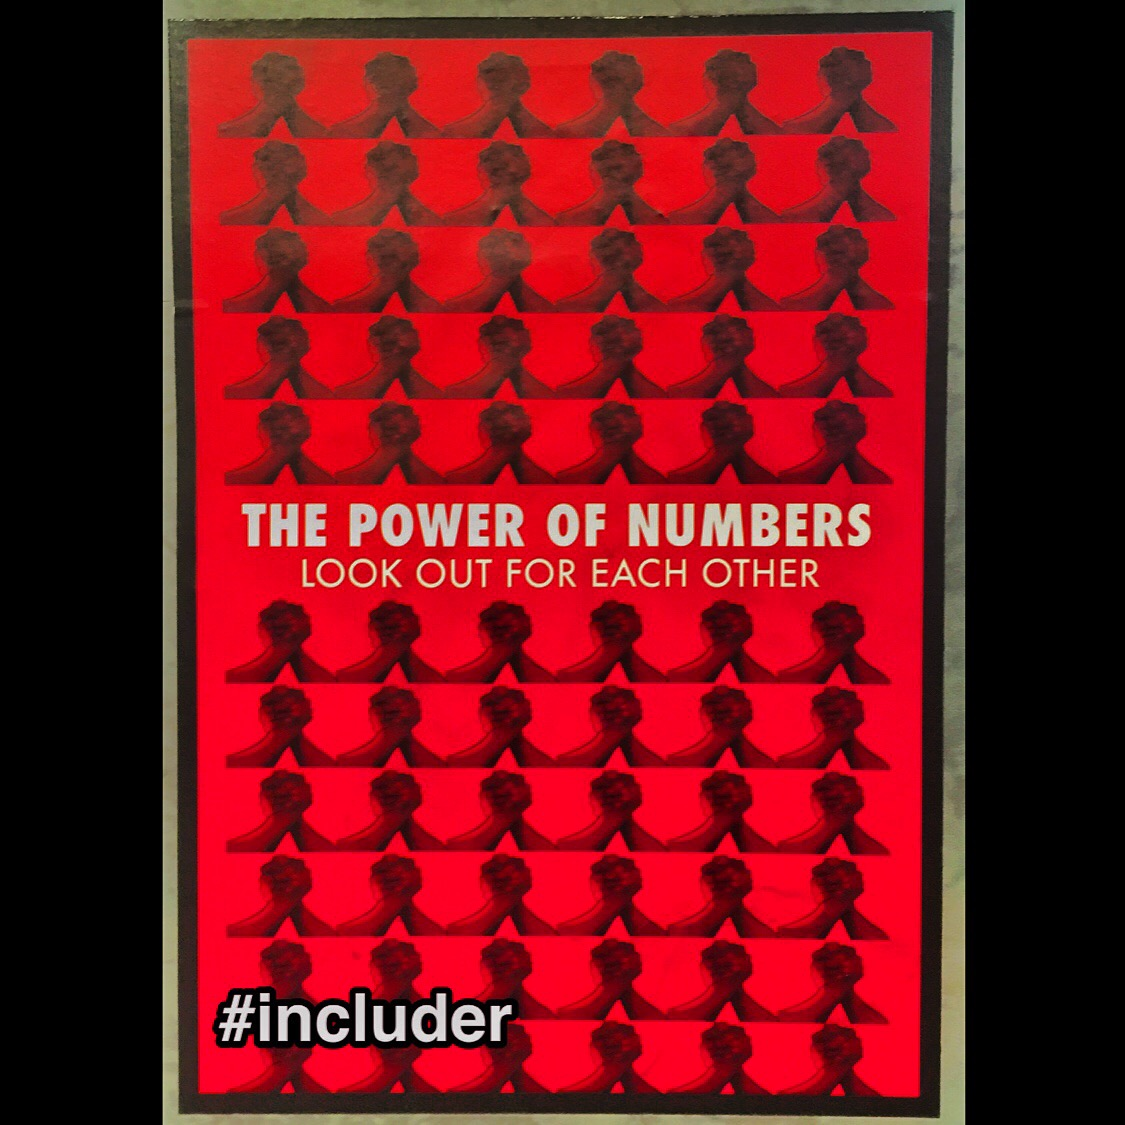 #StrengthsFinder #includer brings people into the fold and finds #ThePowerOfNumbers in a team. They are consistently looking around for #WhoIsLeftOut and welcome them to #JoinInTheFun.  #StrengthsSchool #qotd #Strengths #strengthsquest